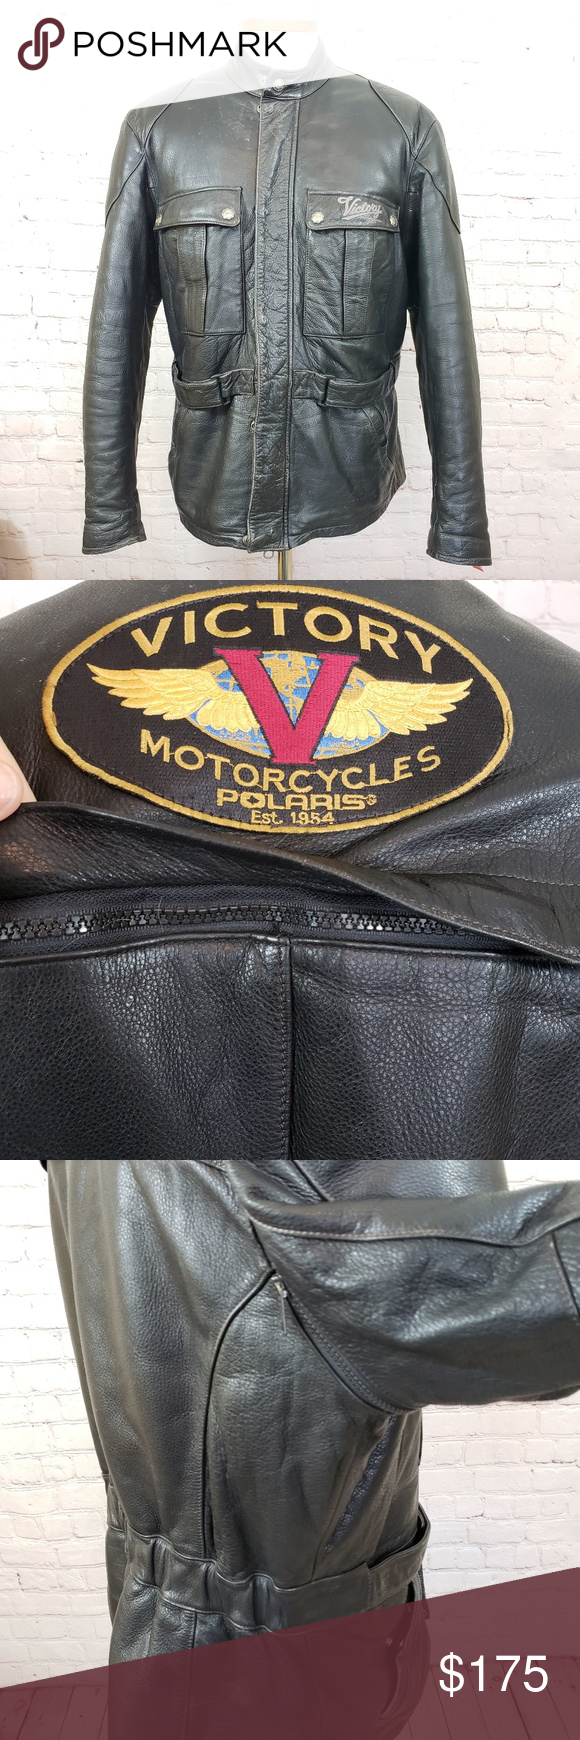 Victory Motorcycle Jacket Motorcycle jacket, Jackets